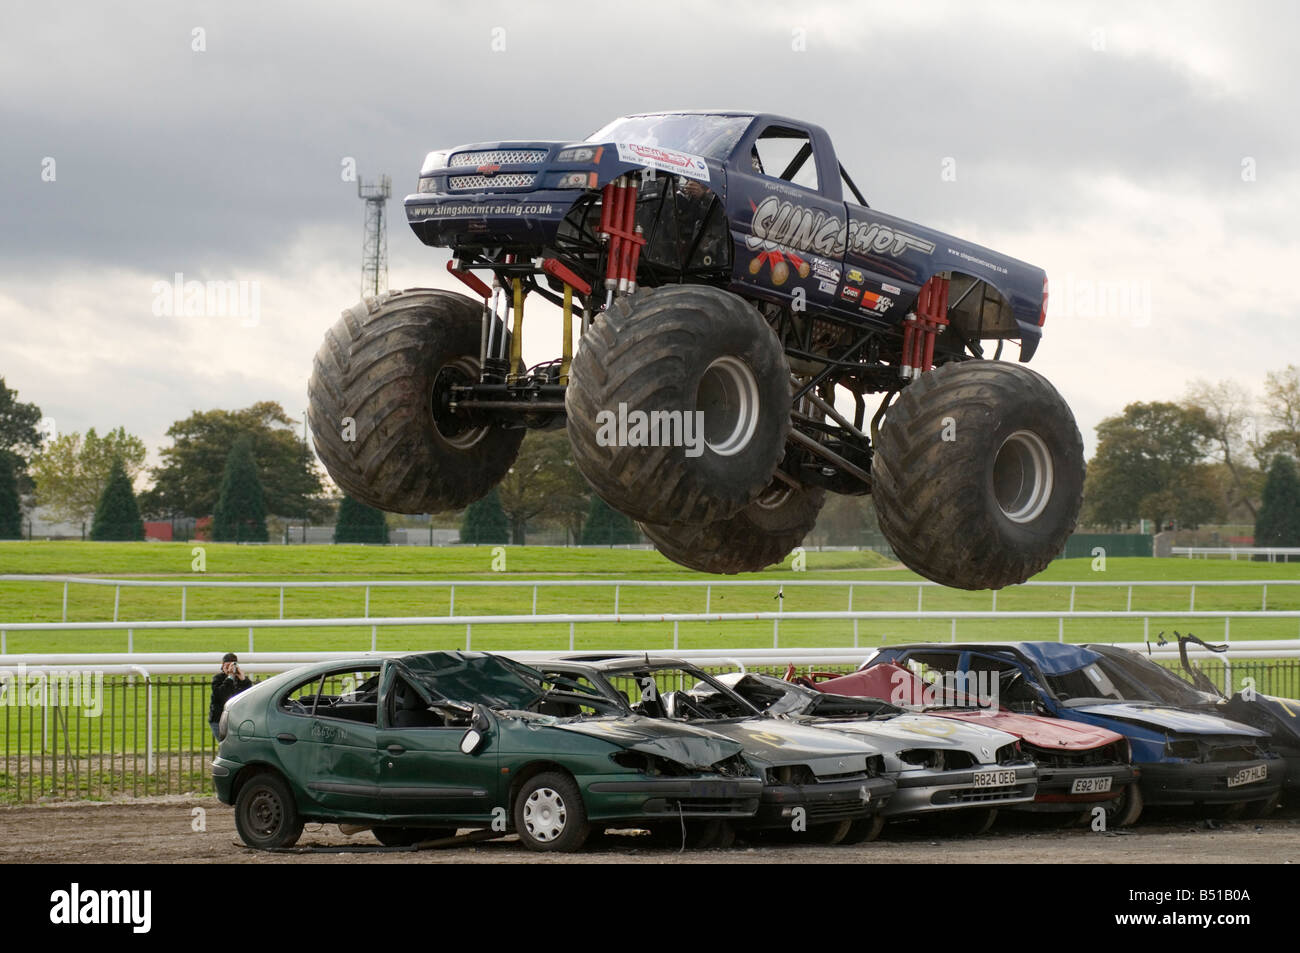 Monster Truck Jumping Over Crushed Cars In A Race Stock Photo